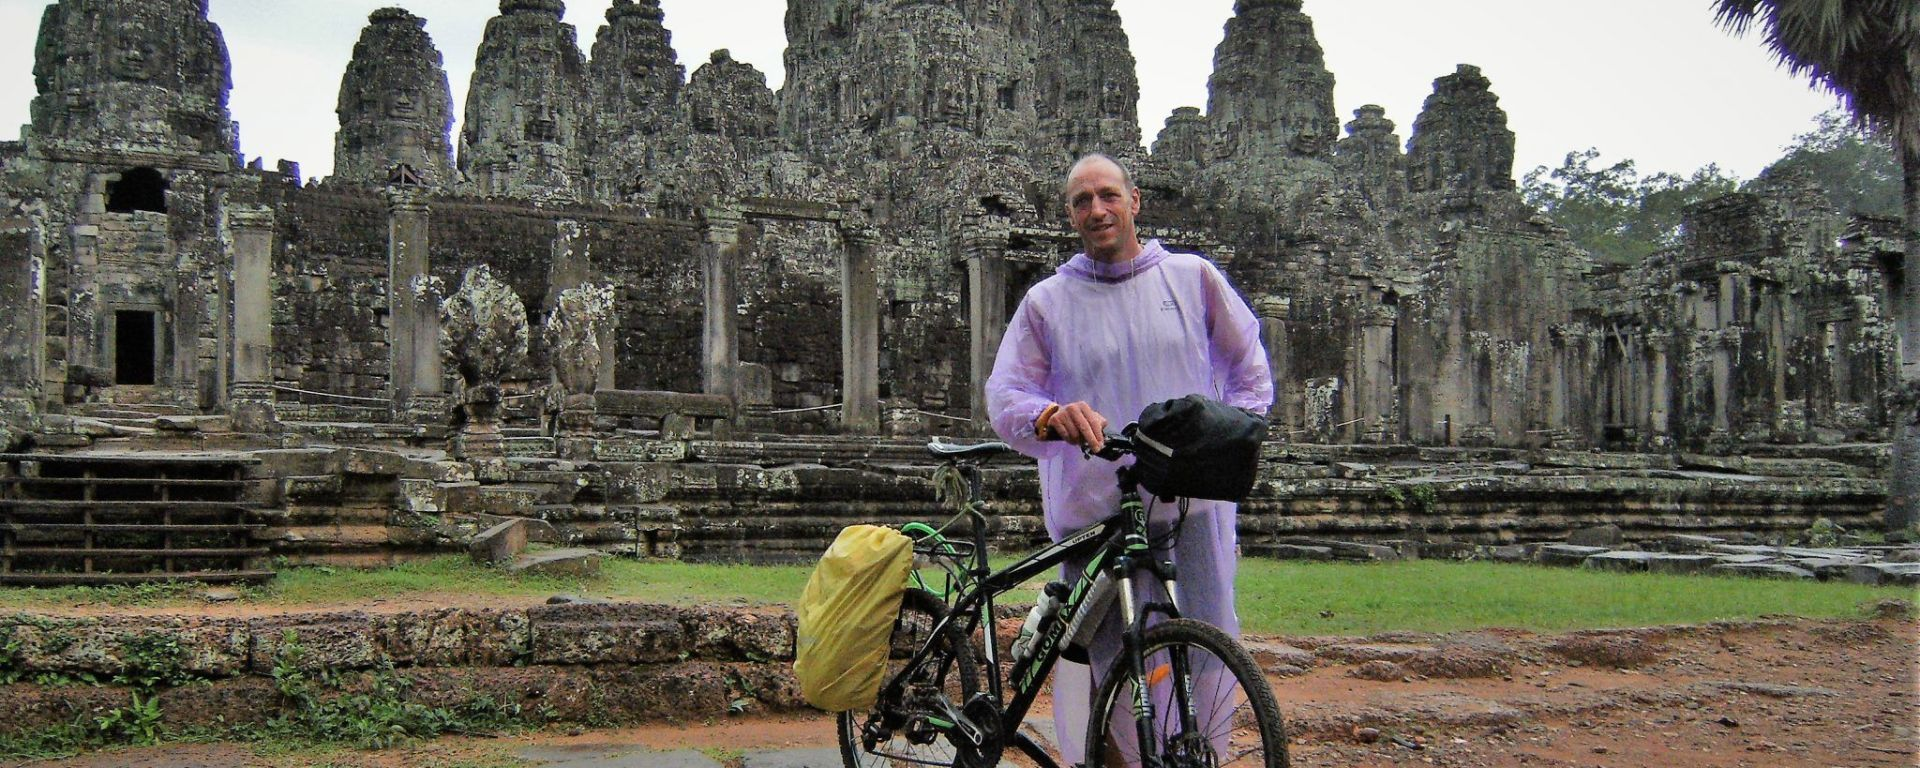 Bayon Temple and bike, Angkor, Cambodia